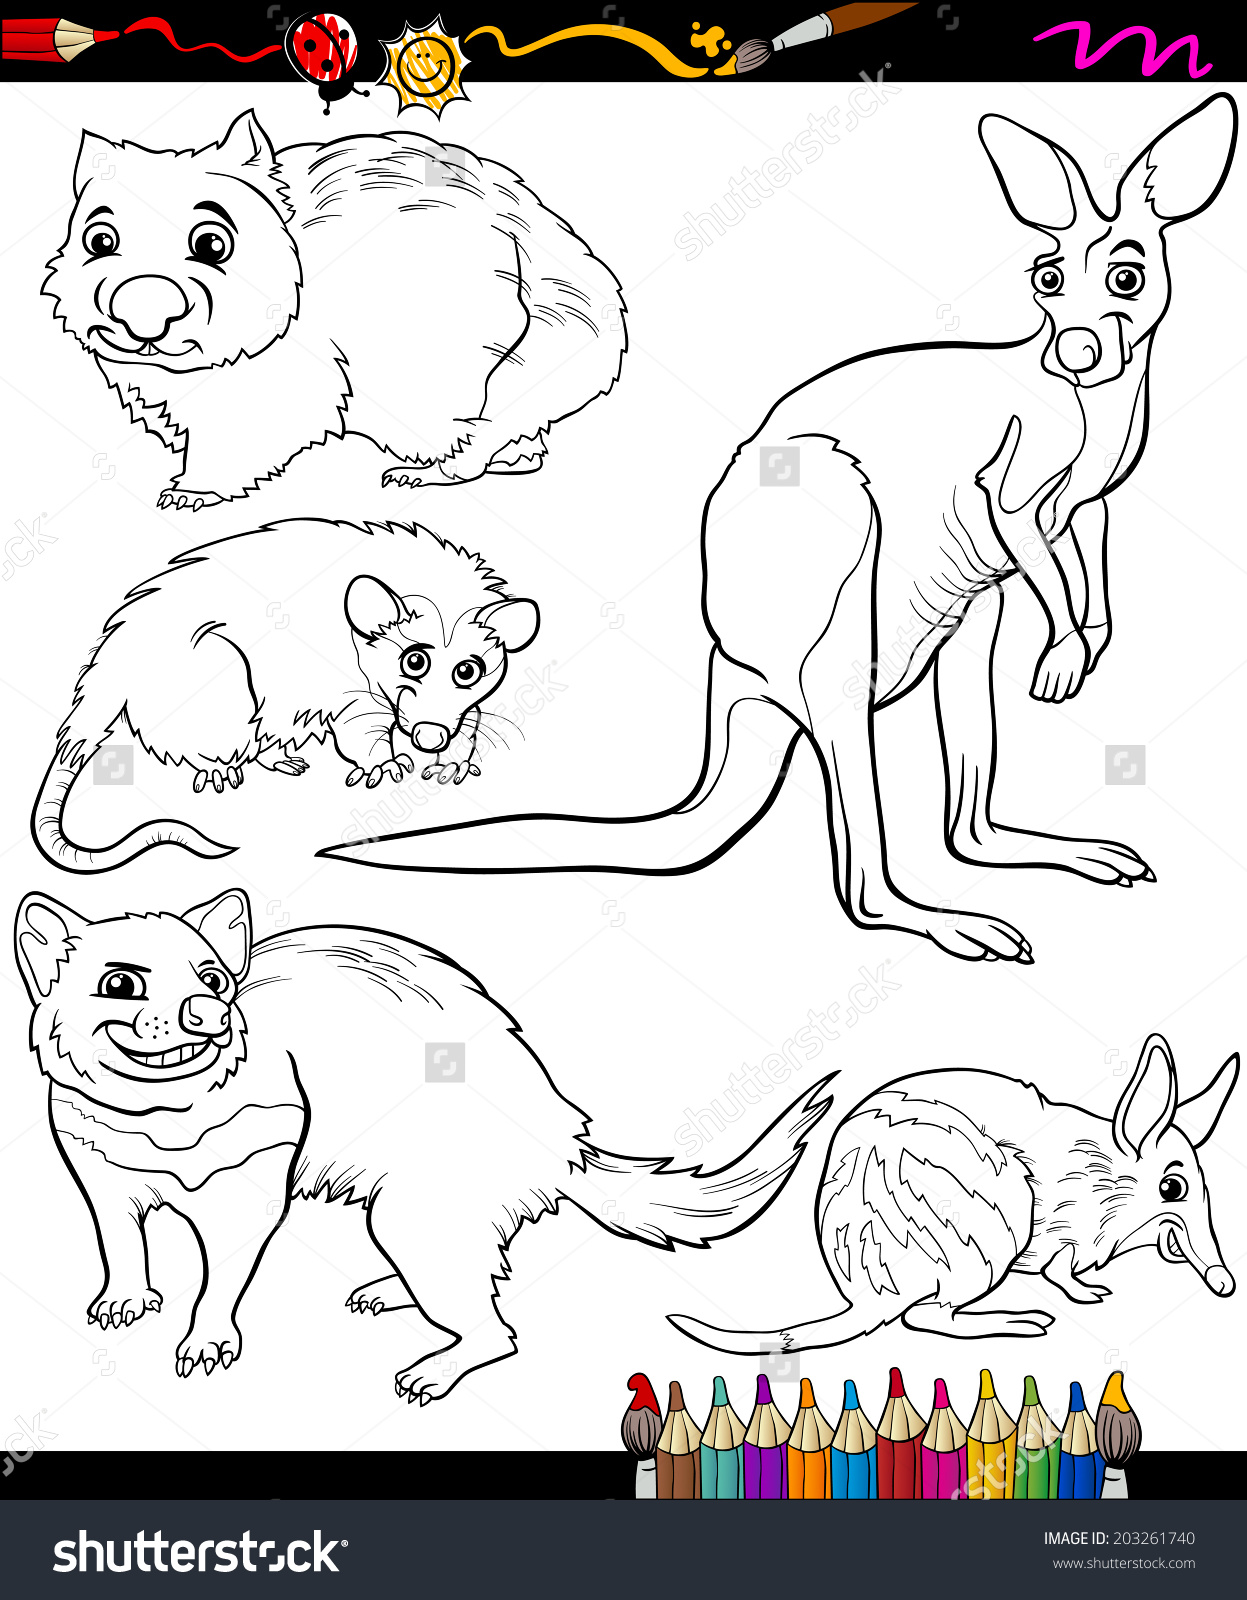 Marsupial coloring #9, Download drawings